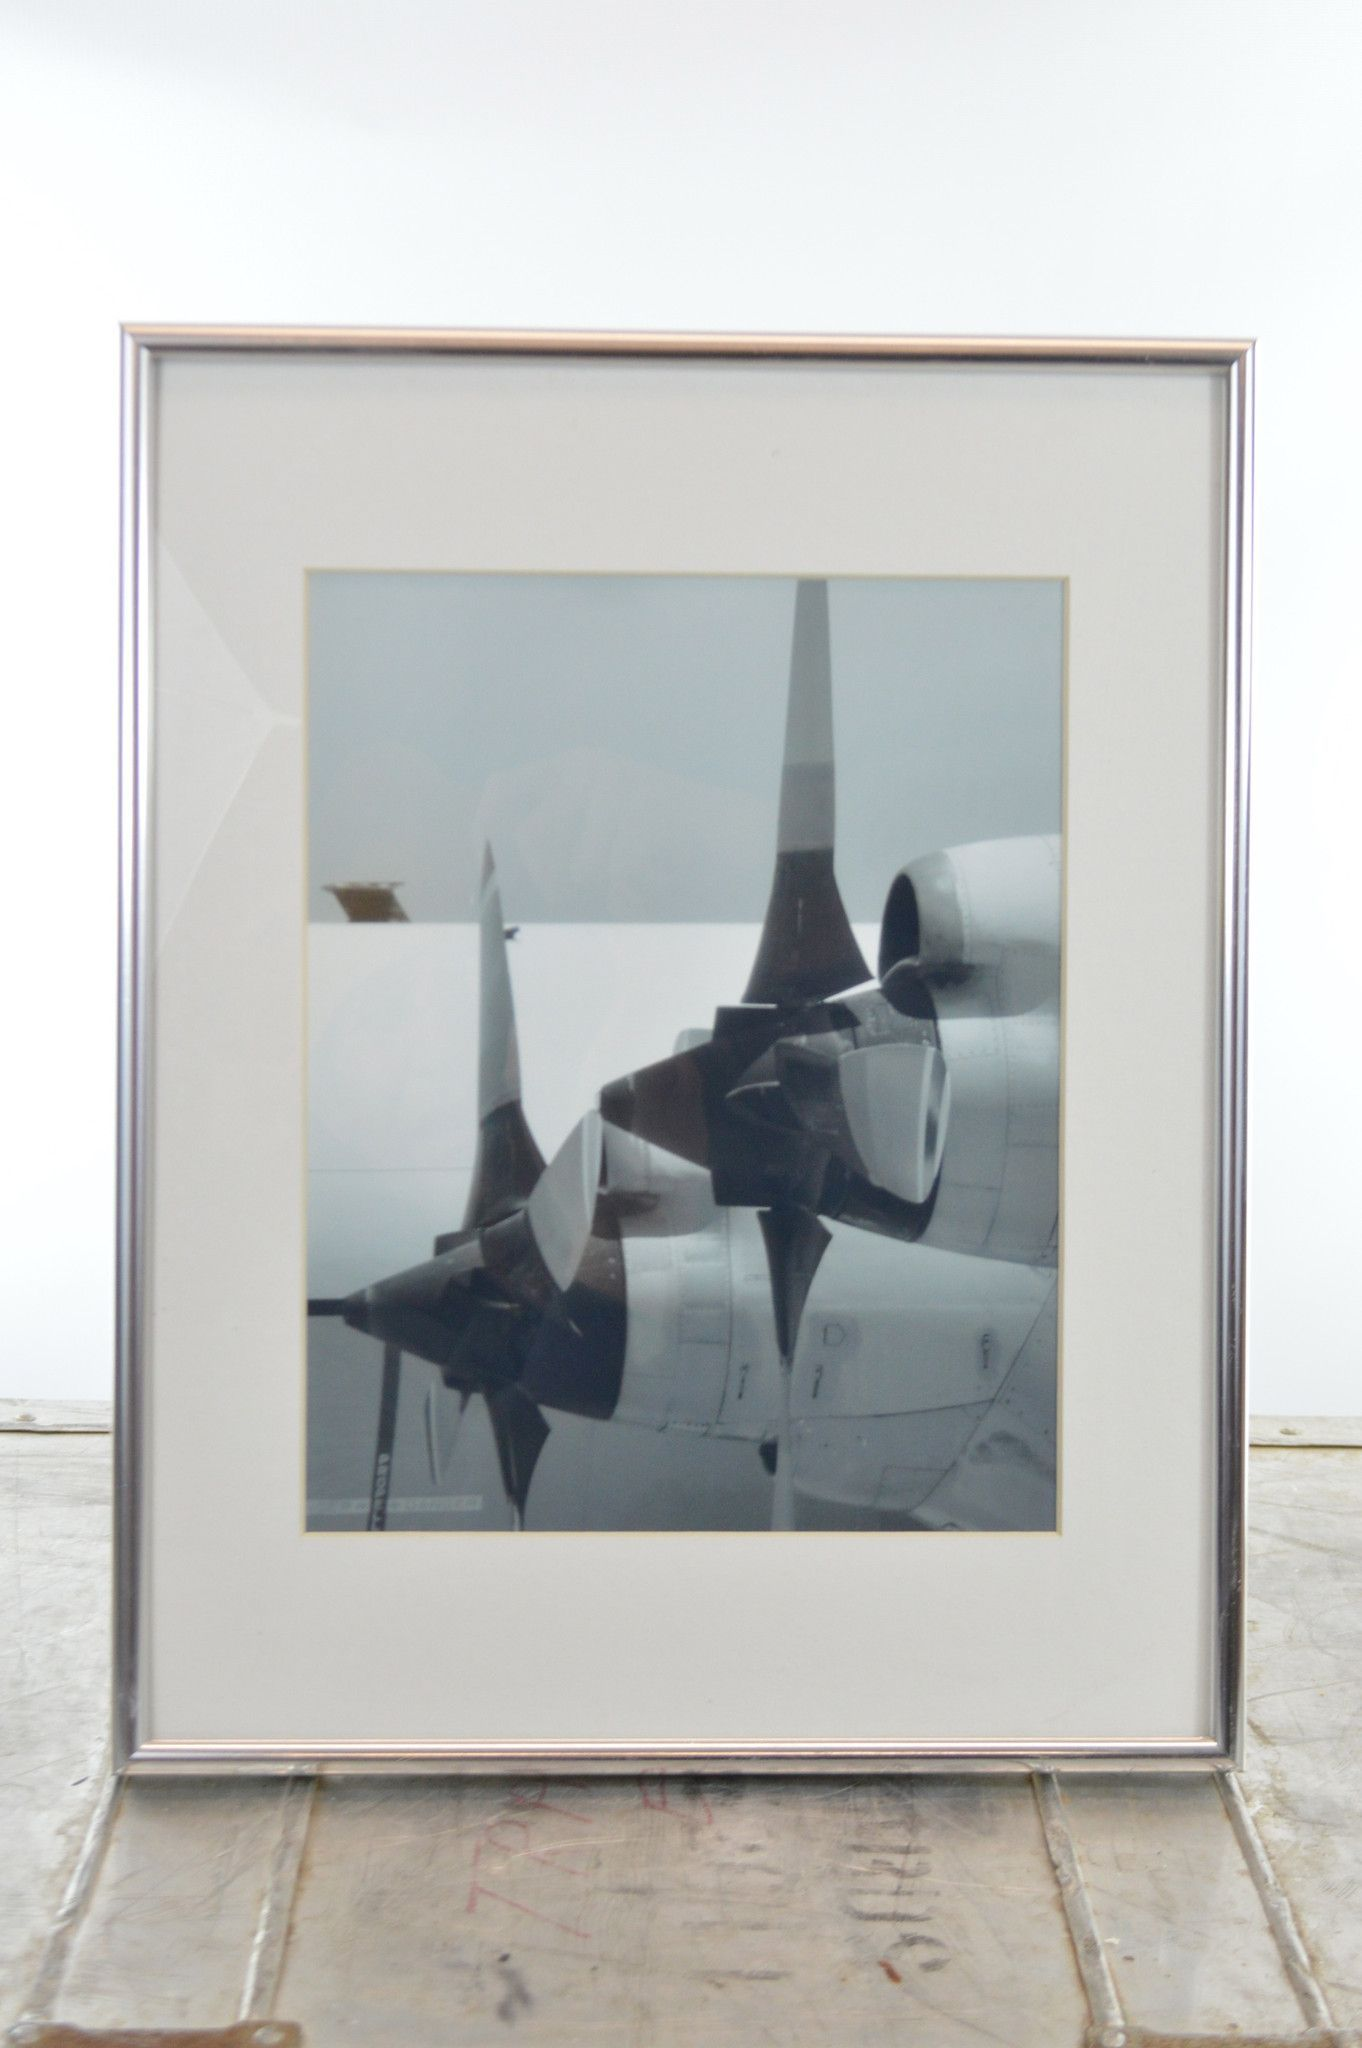 Aviation Art Framed Airplane Photograph of Propellers | Products ...